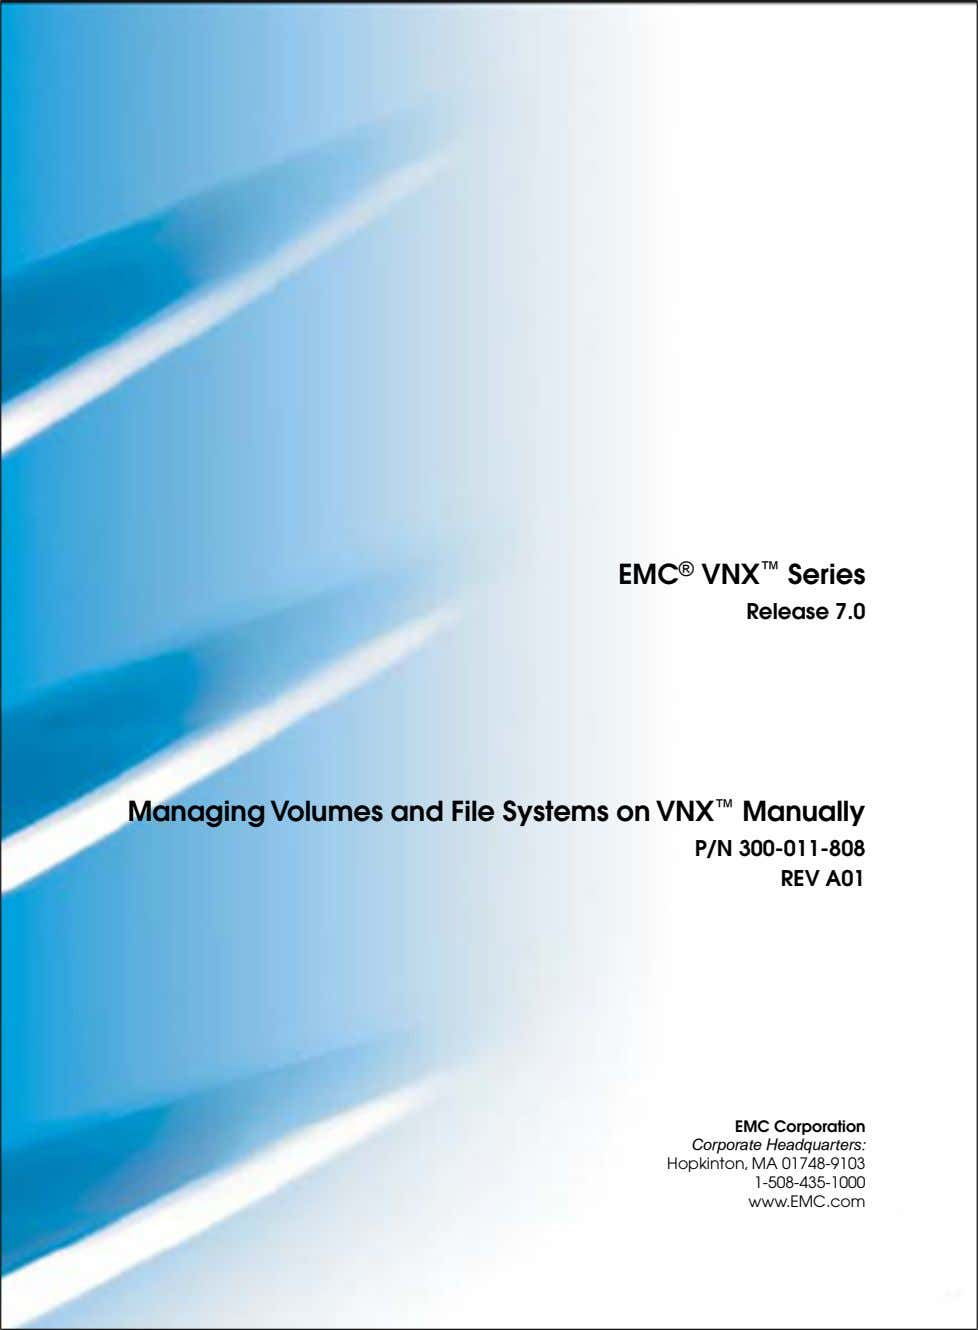 EMC ® VNX ™ Series Release 7.0 Managing Volumes and File Systems on VNX ™